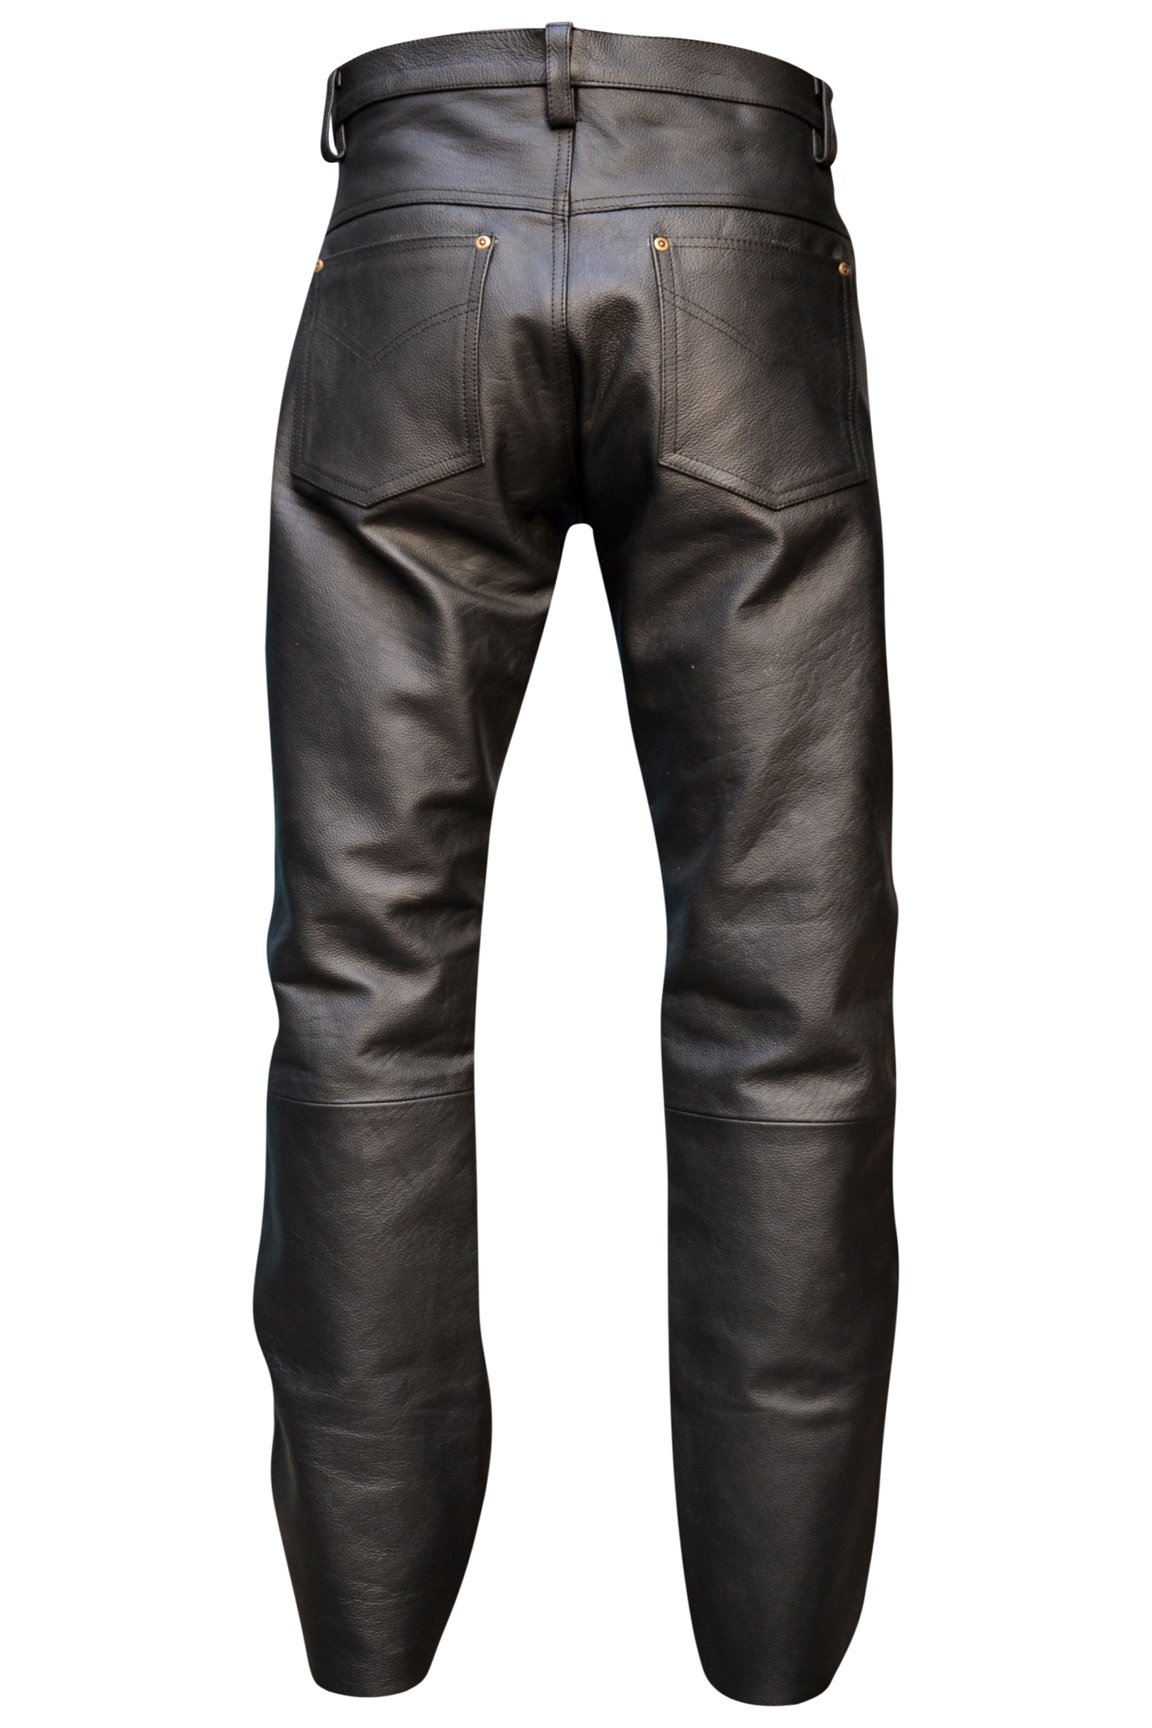 Mens Genuine Leather Pant 5 Pockets Jeans Style Button Fly Model (38 Inch Waist) by Rakson (Image #2)